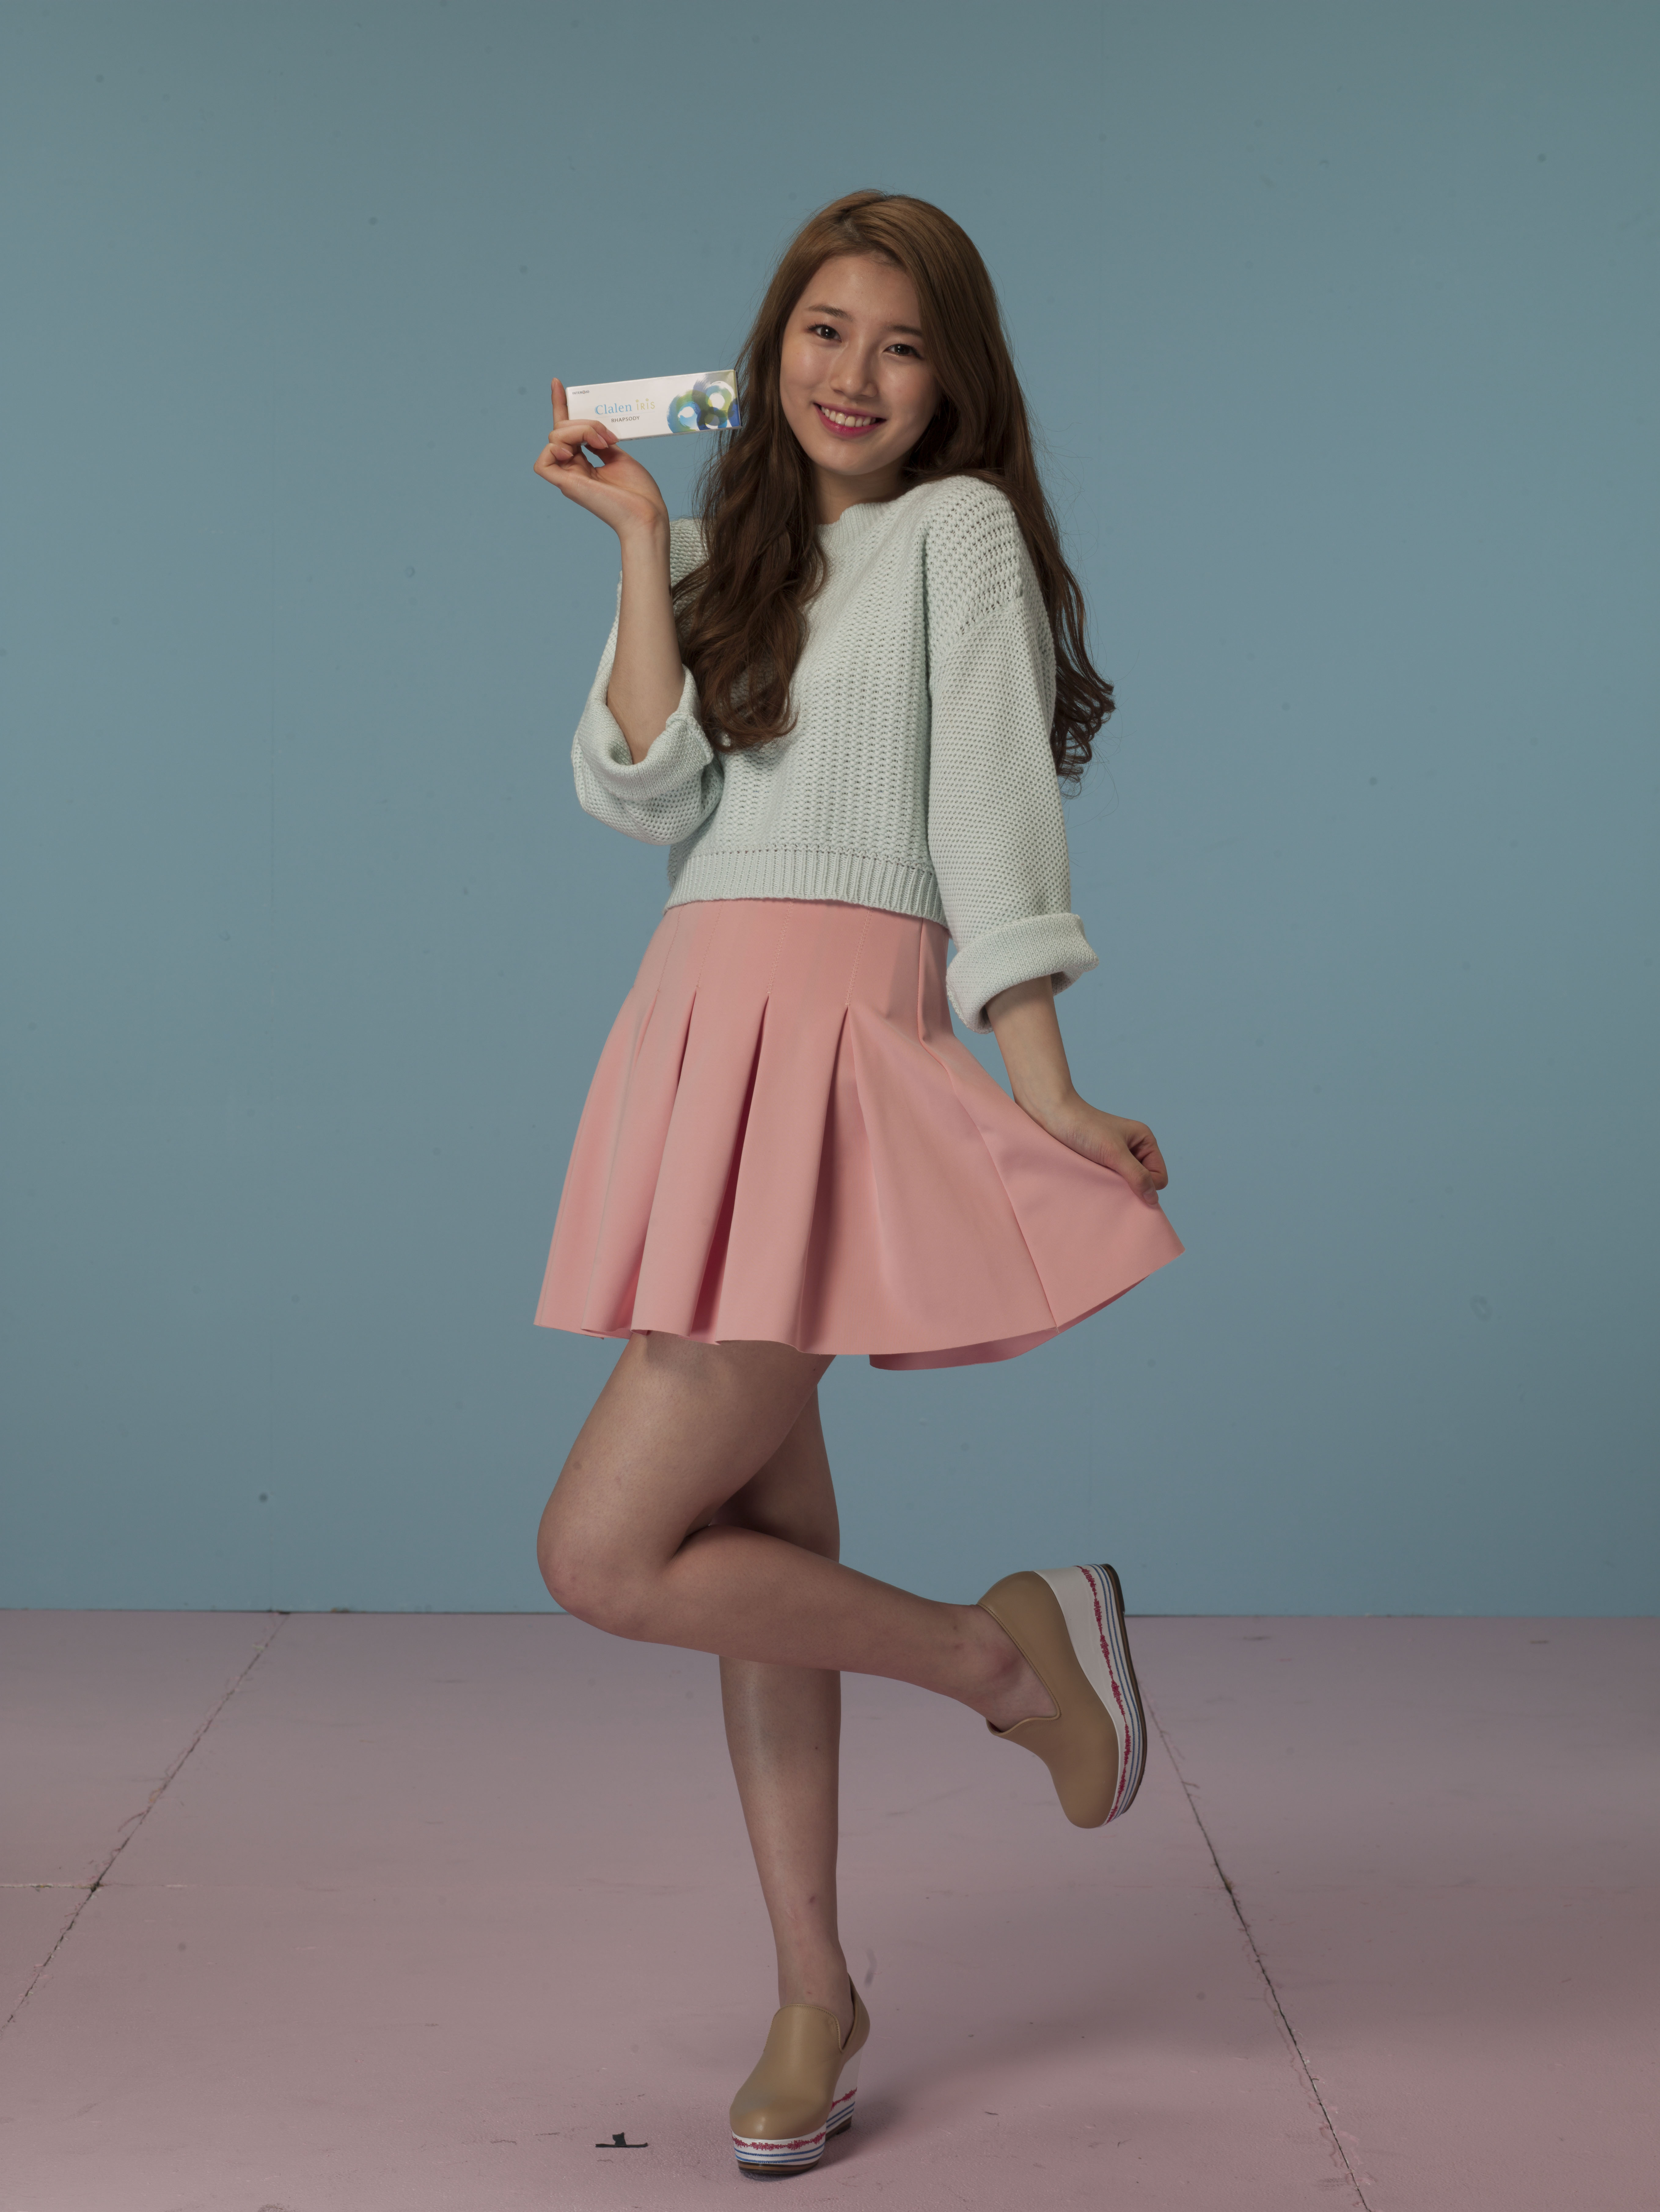 Bae Suzy Android Iphone Wallpaper 904 Asiachan Kpop